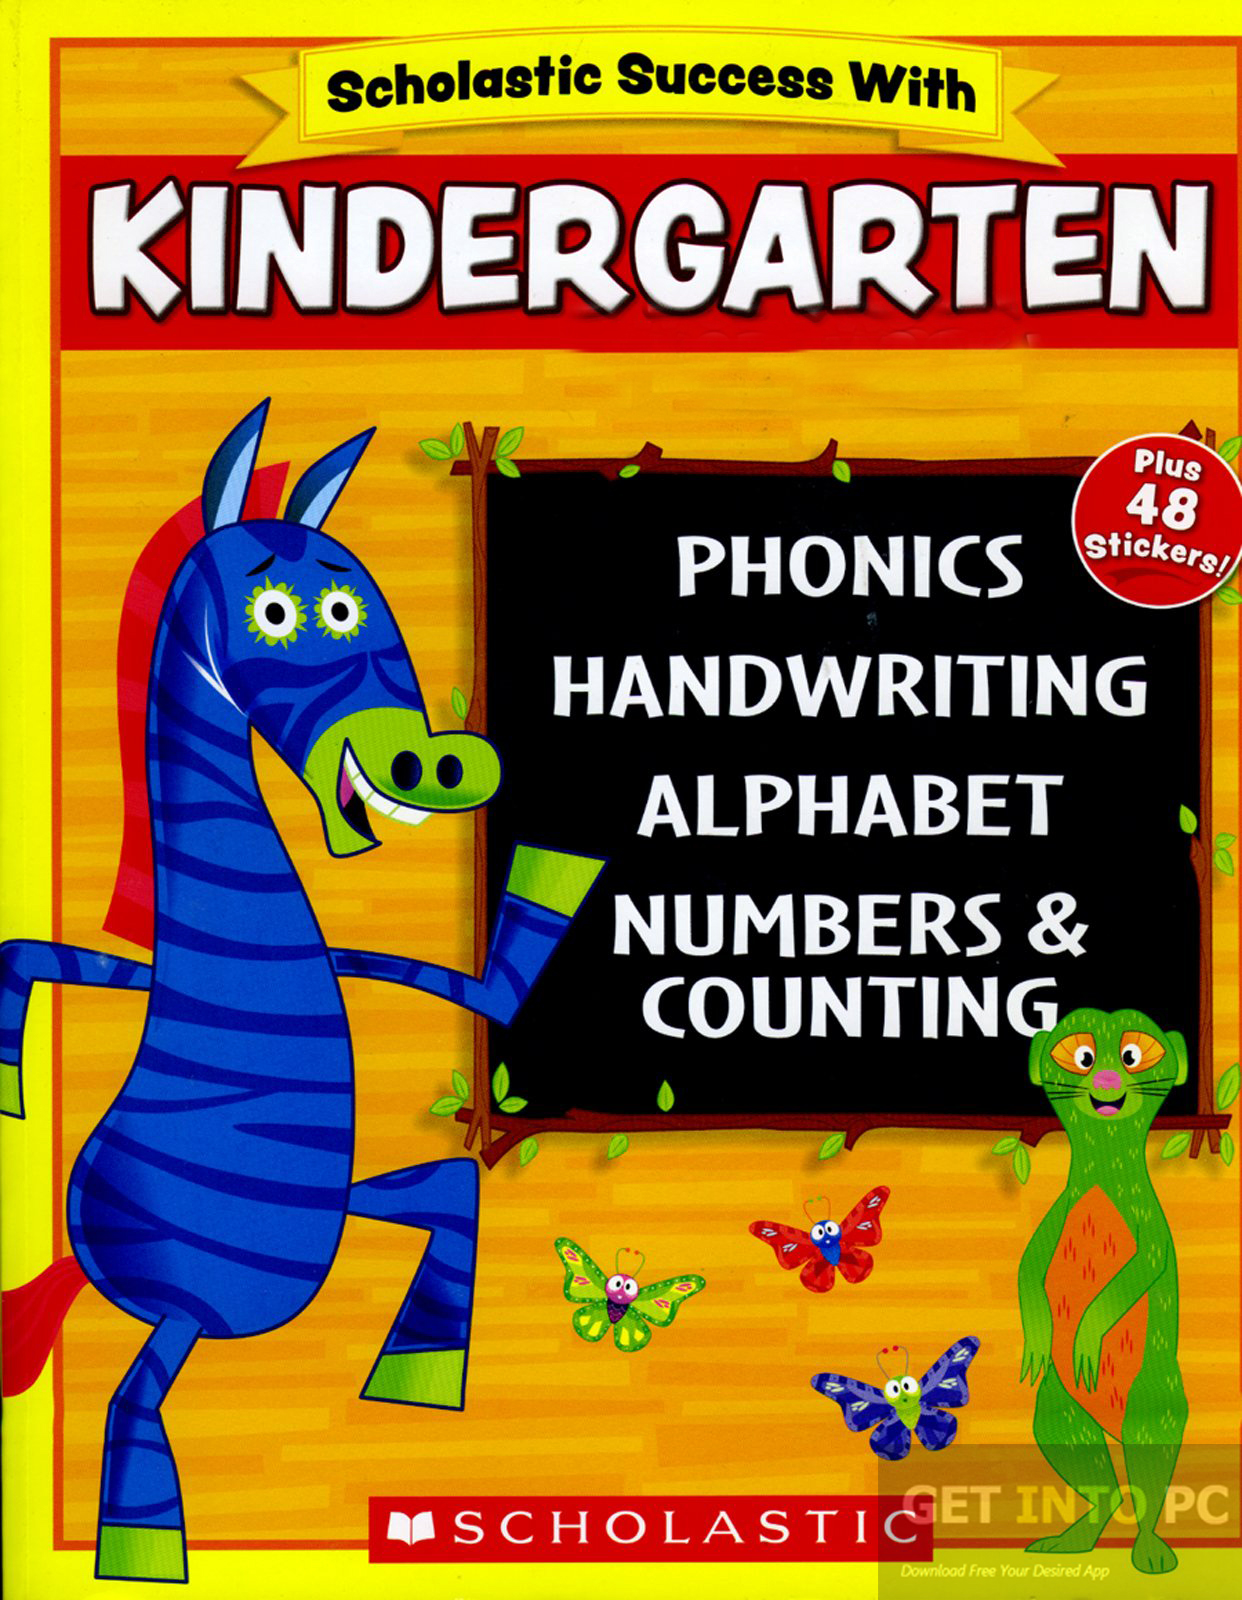 Scholastic Math Kindergarten to 2nd Grade Educational Free Download